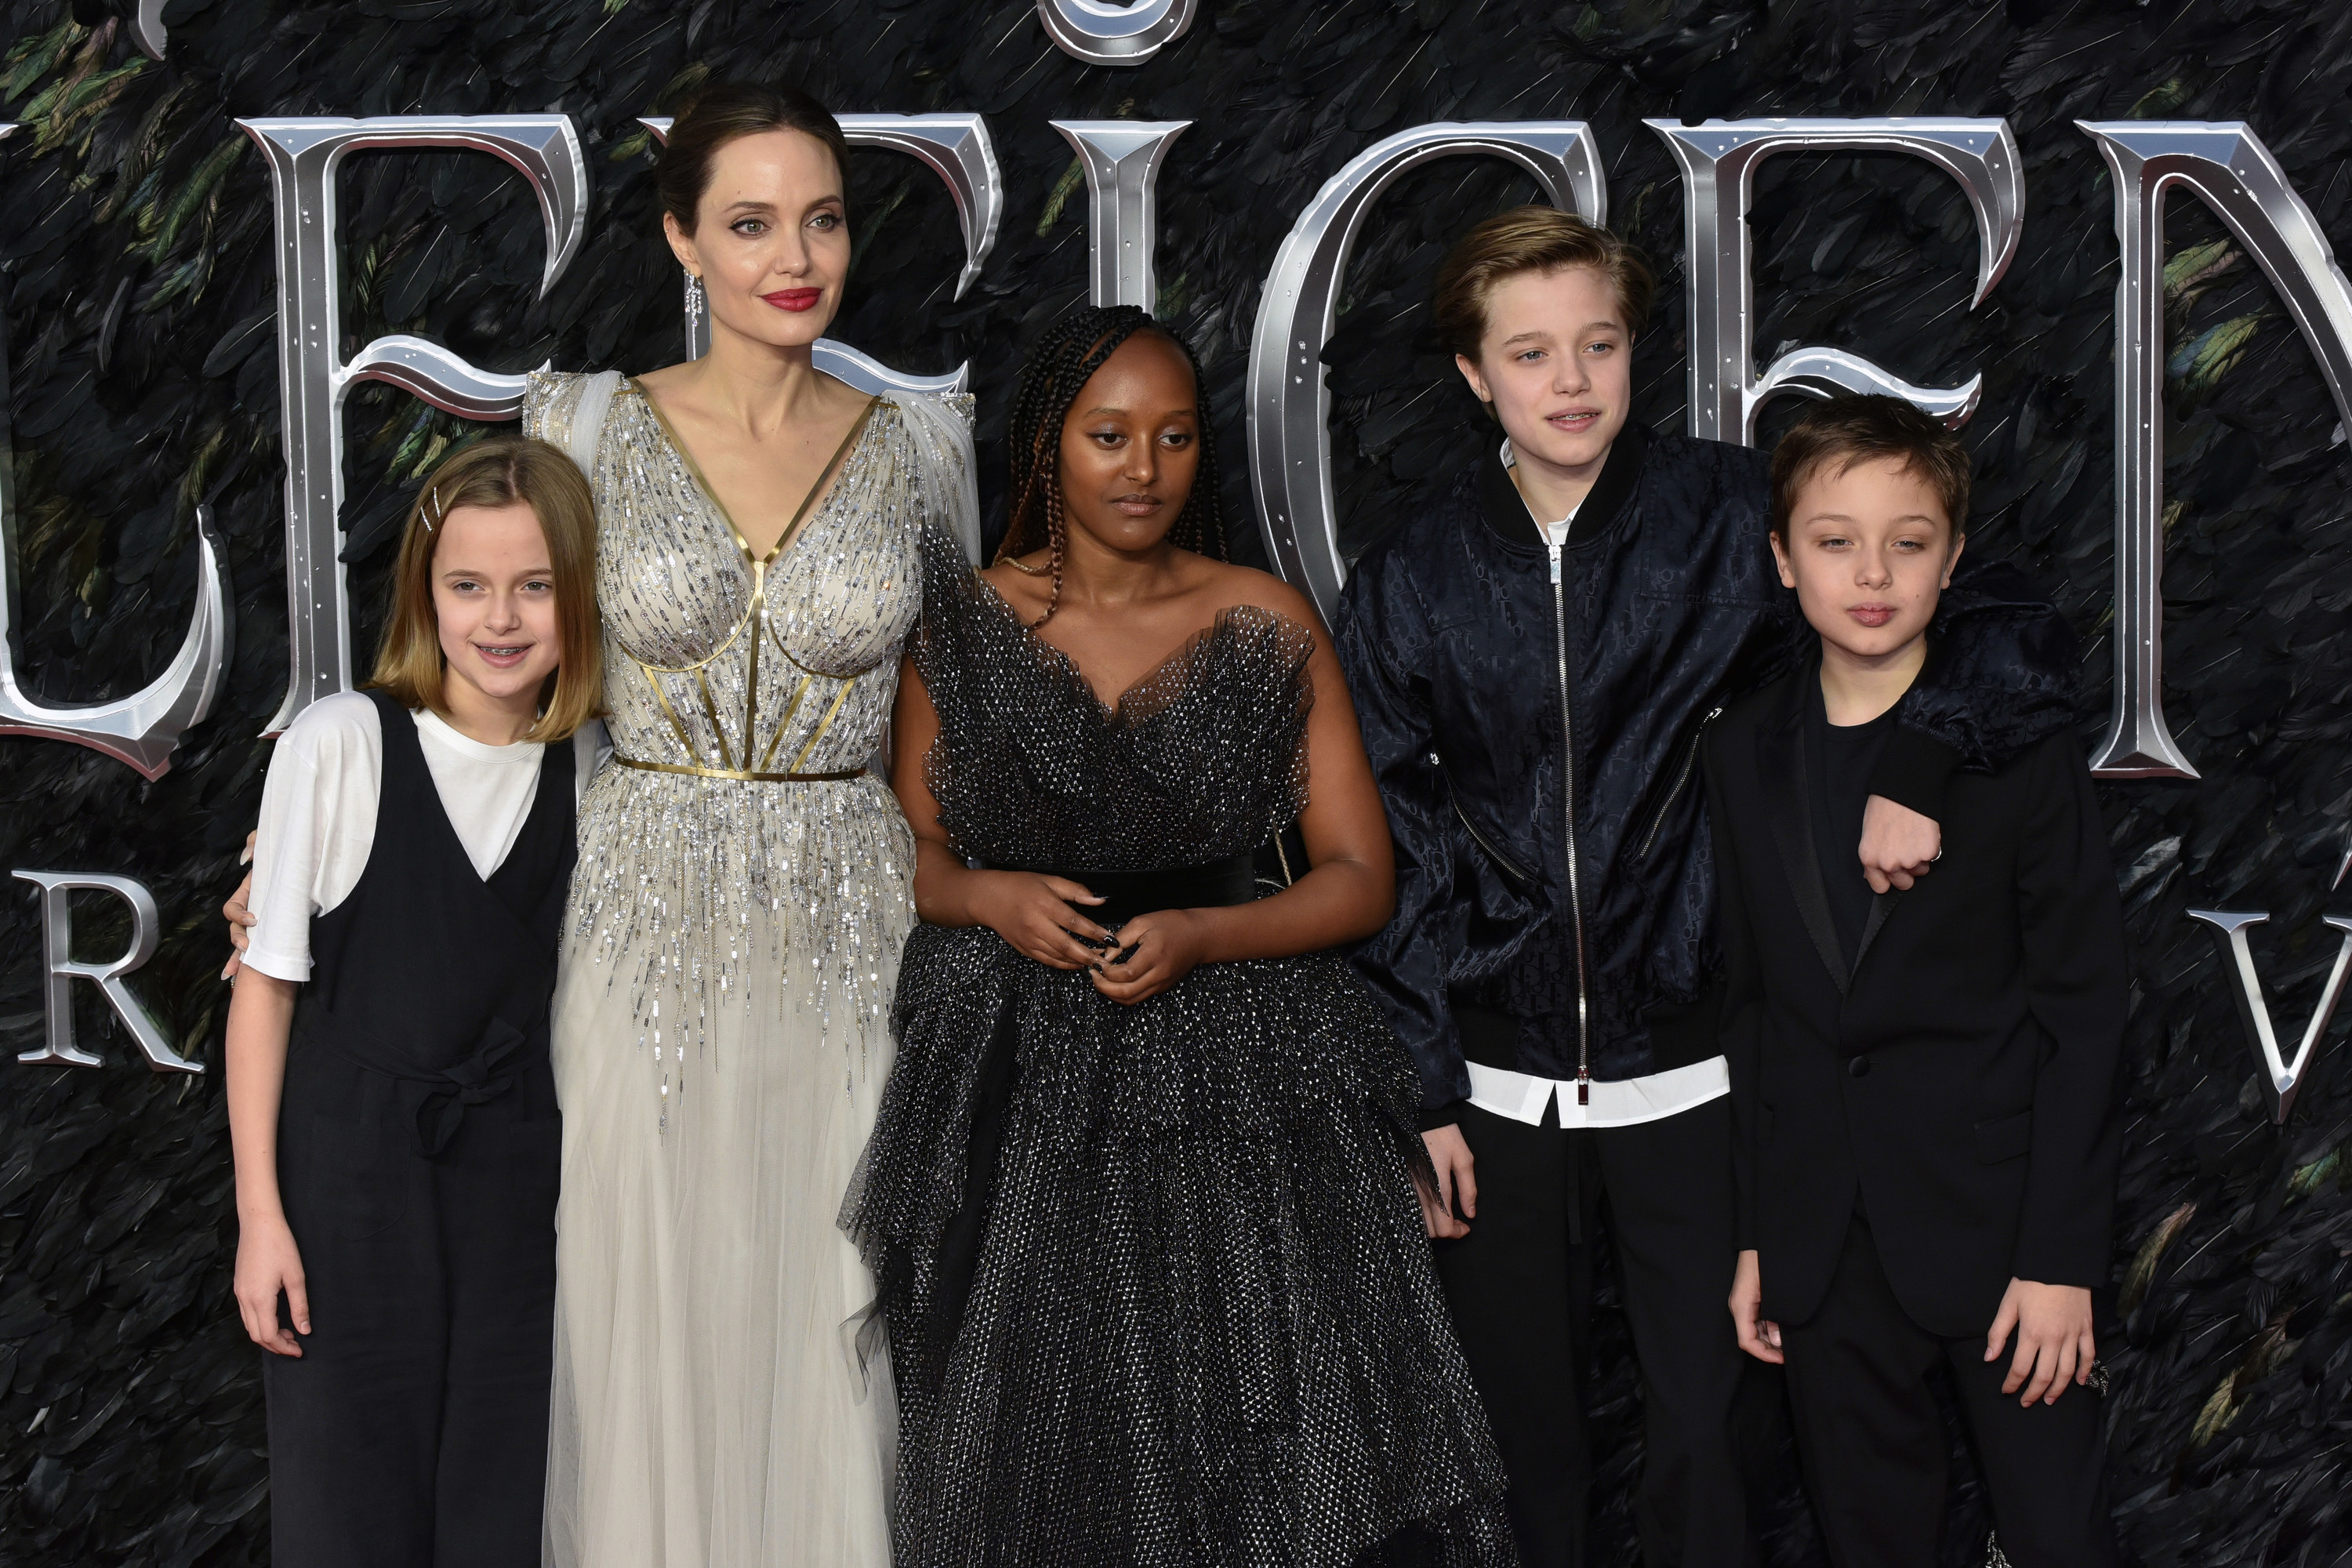 Angelina with four of her children on the red carpet